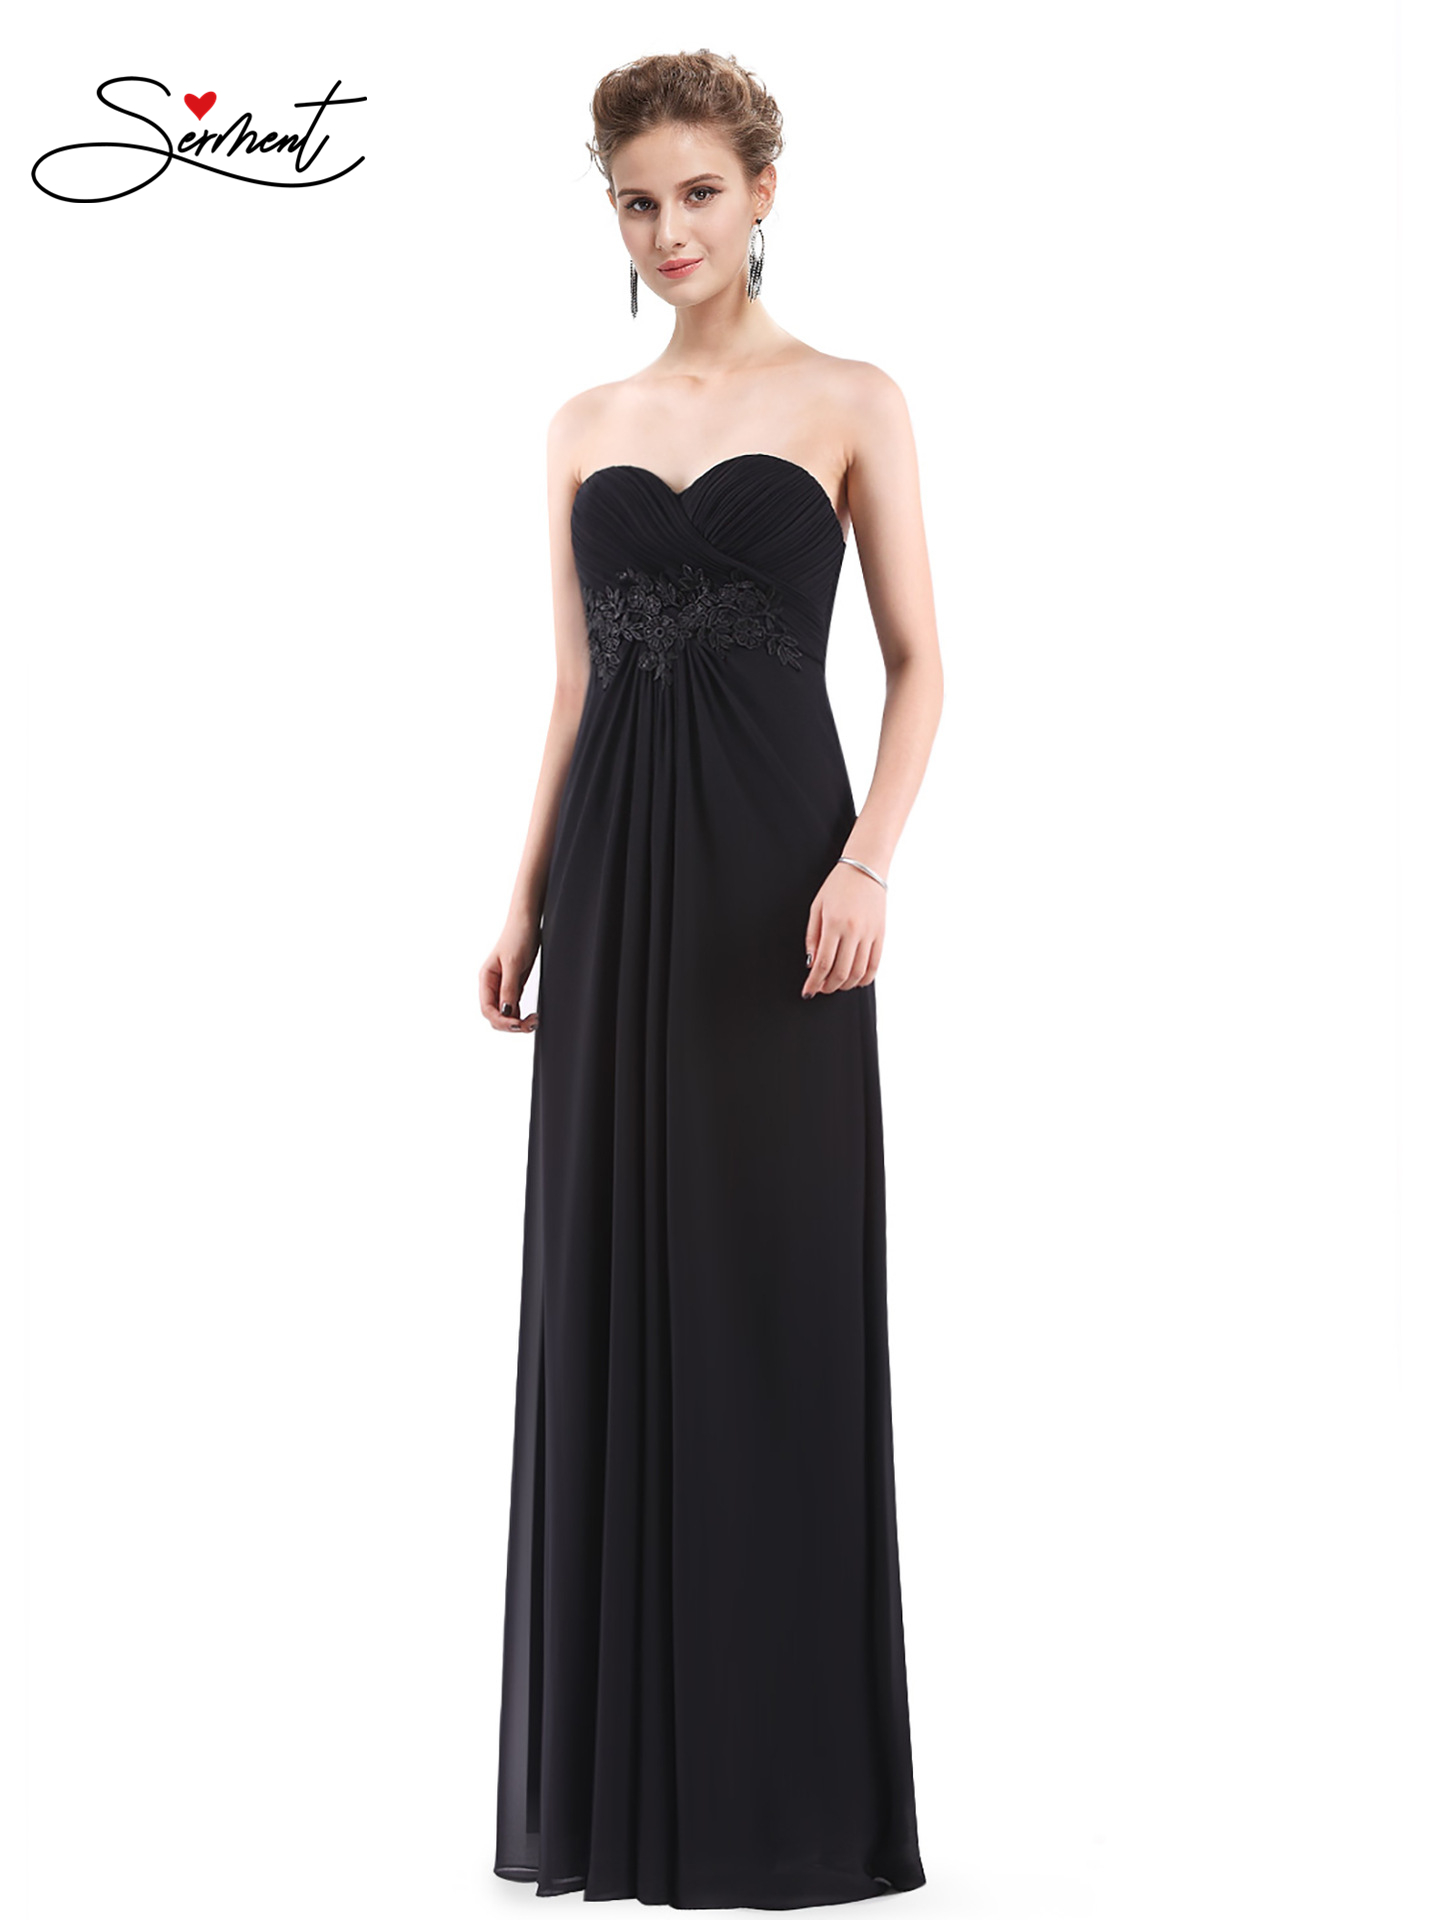 OLLYMURS New Elegant Woman Evening Gown Chiffon Tube Top Solid Color Slim Elegant Evening Dress Suitable For Formal Parties